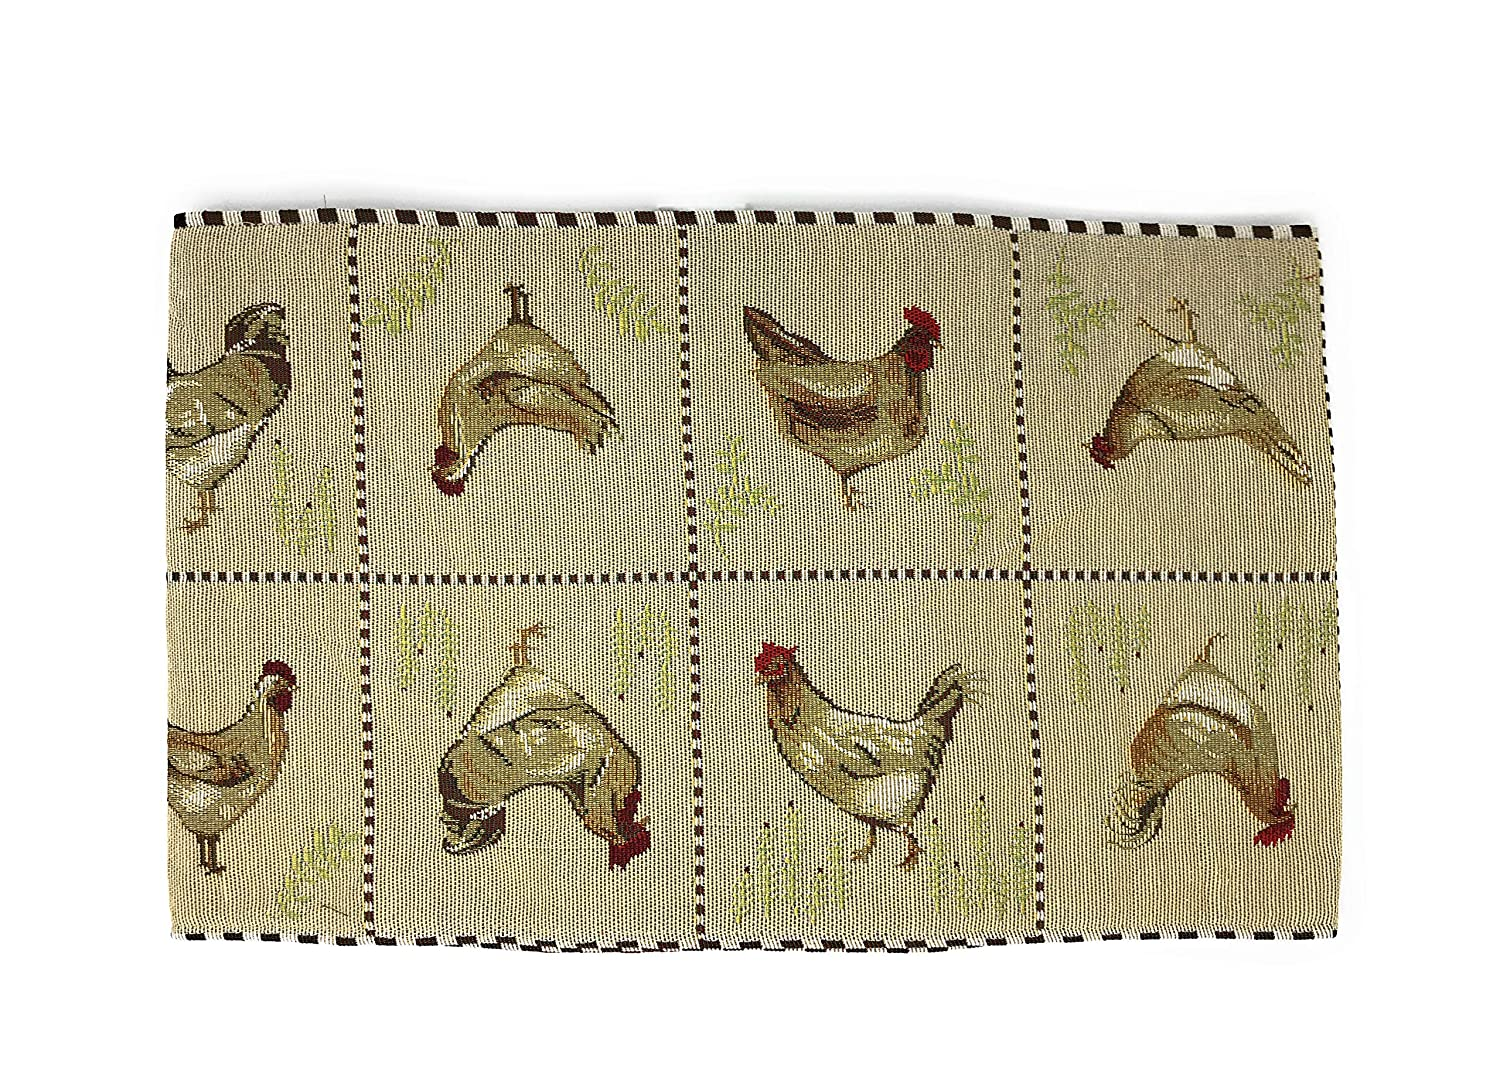 Tache Country Farmhouse Style Rooster Chicken Hens Vintage Decorative Woven Tapestry Dresser Kitchen Coffee Table Runners, 13x54